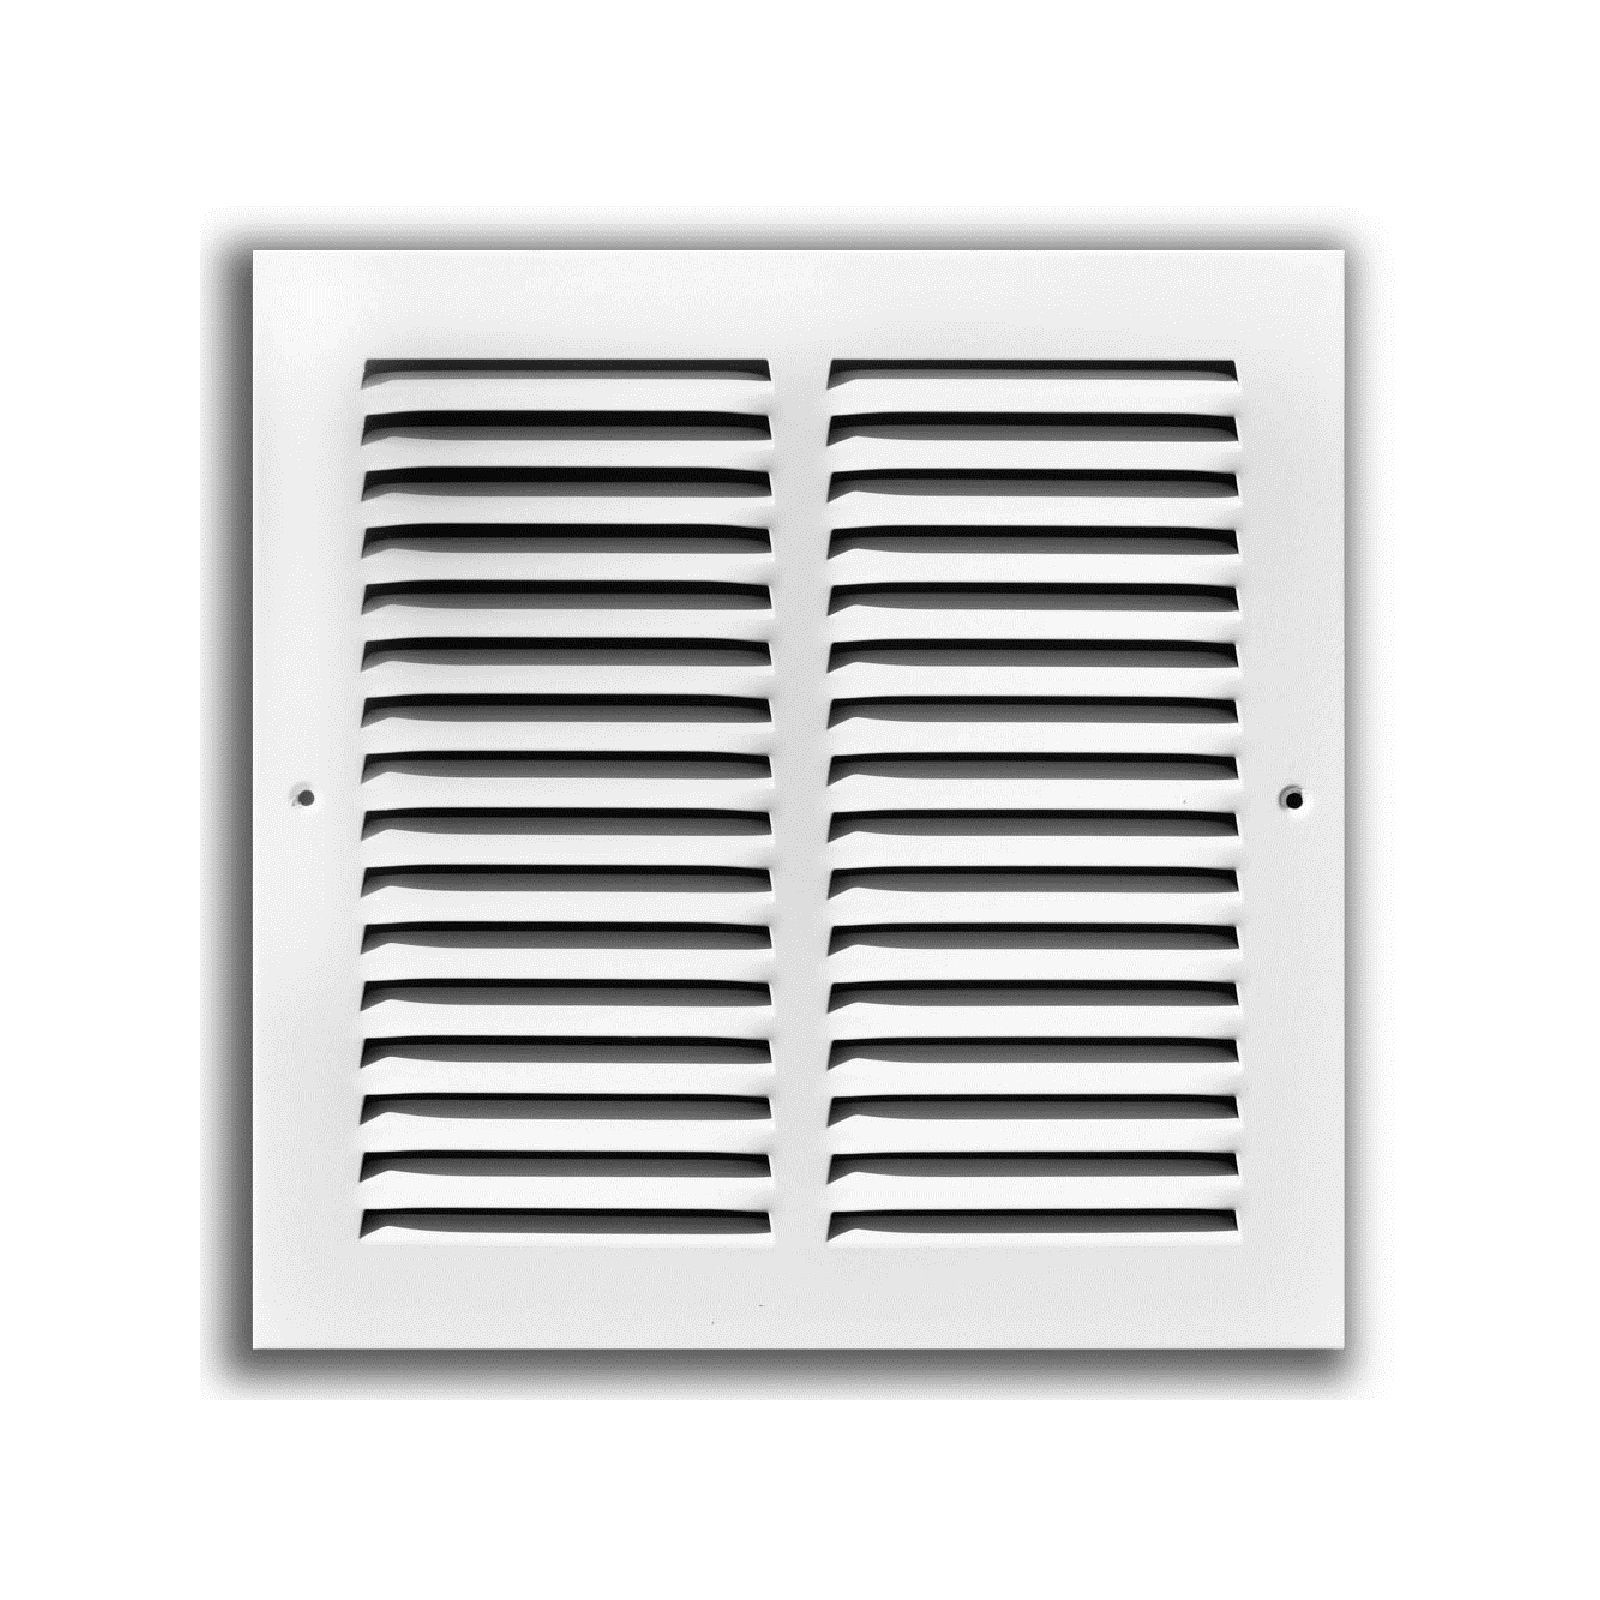 "TRUaire 170 24X06 - Steel Return Air Grille - 1/2"" Spaced Fin, White, 24"" X 06"""